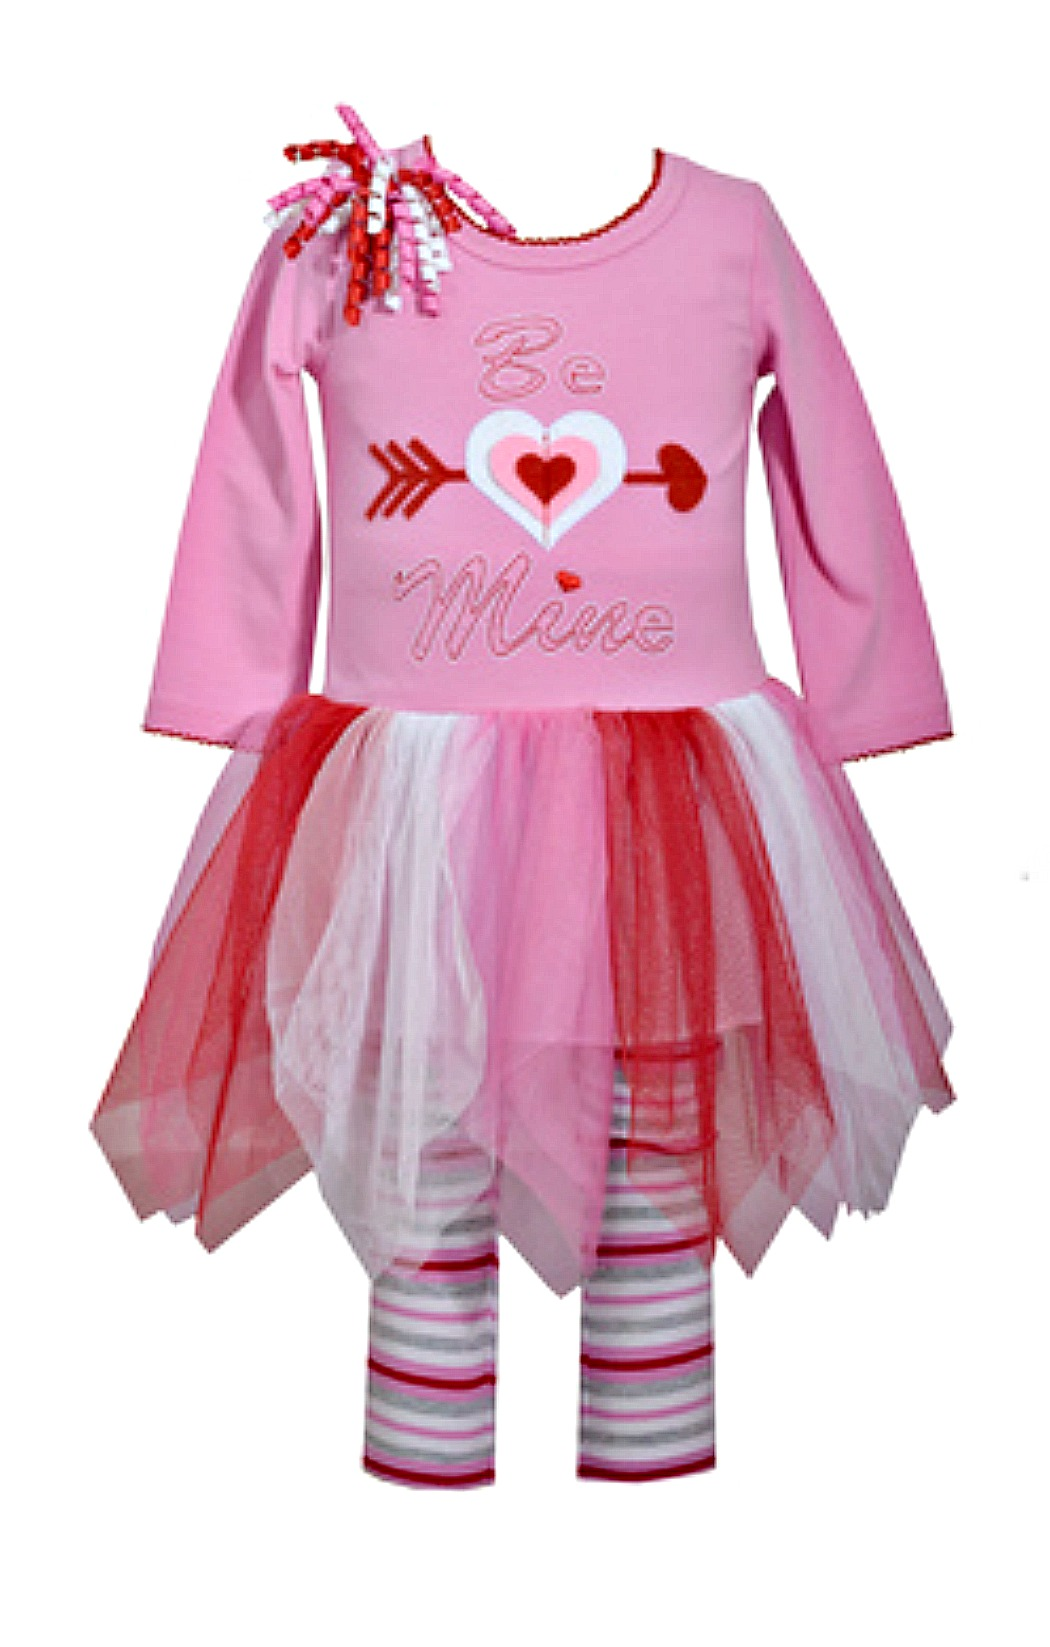 Valentines Day Outfit Infant Girls Pink Be Mine Tutu Dress And Striped Leggings Set